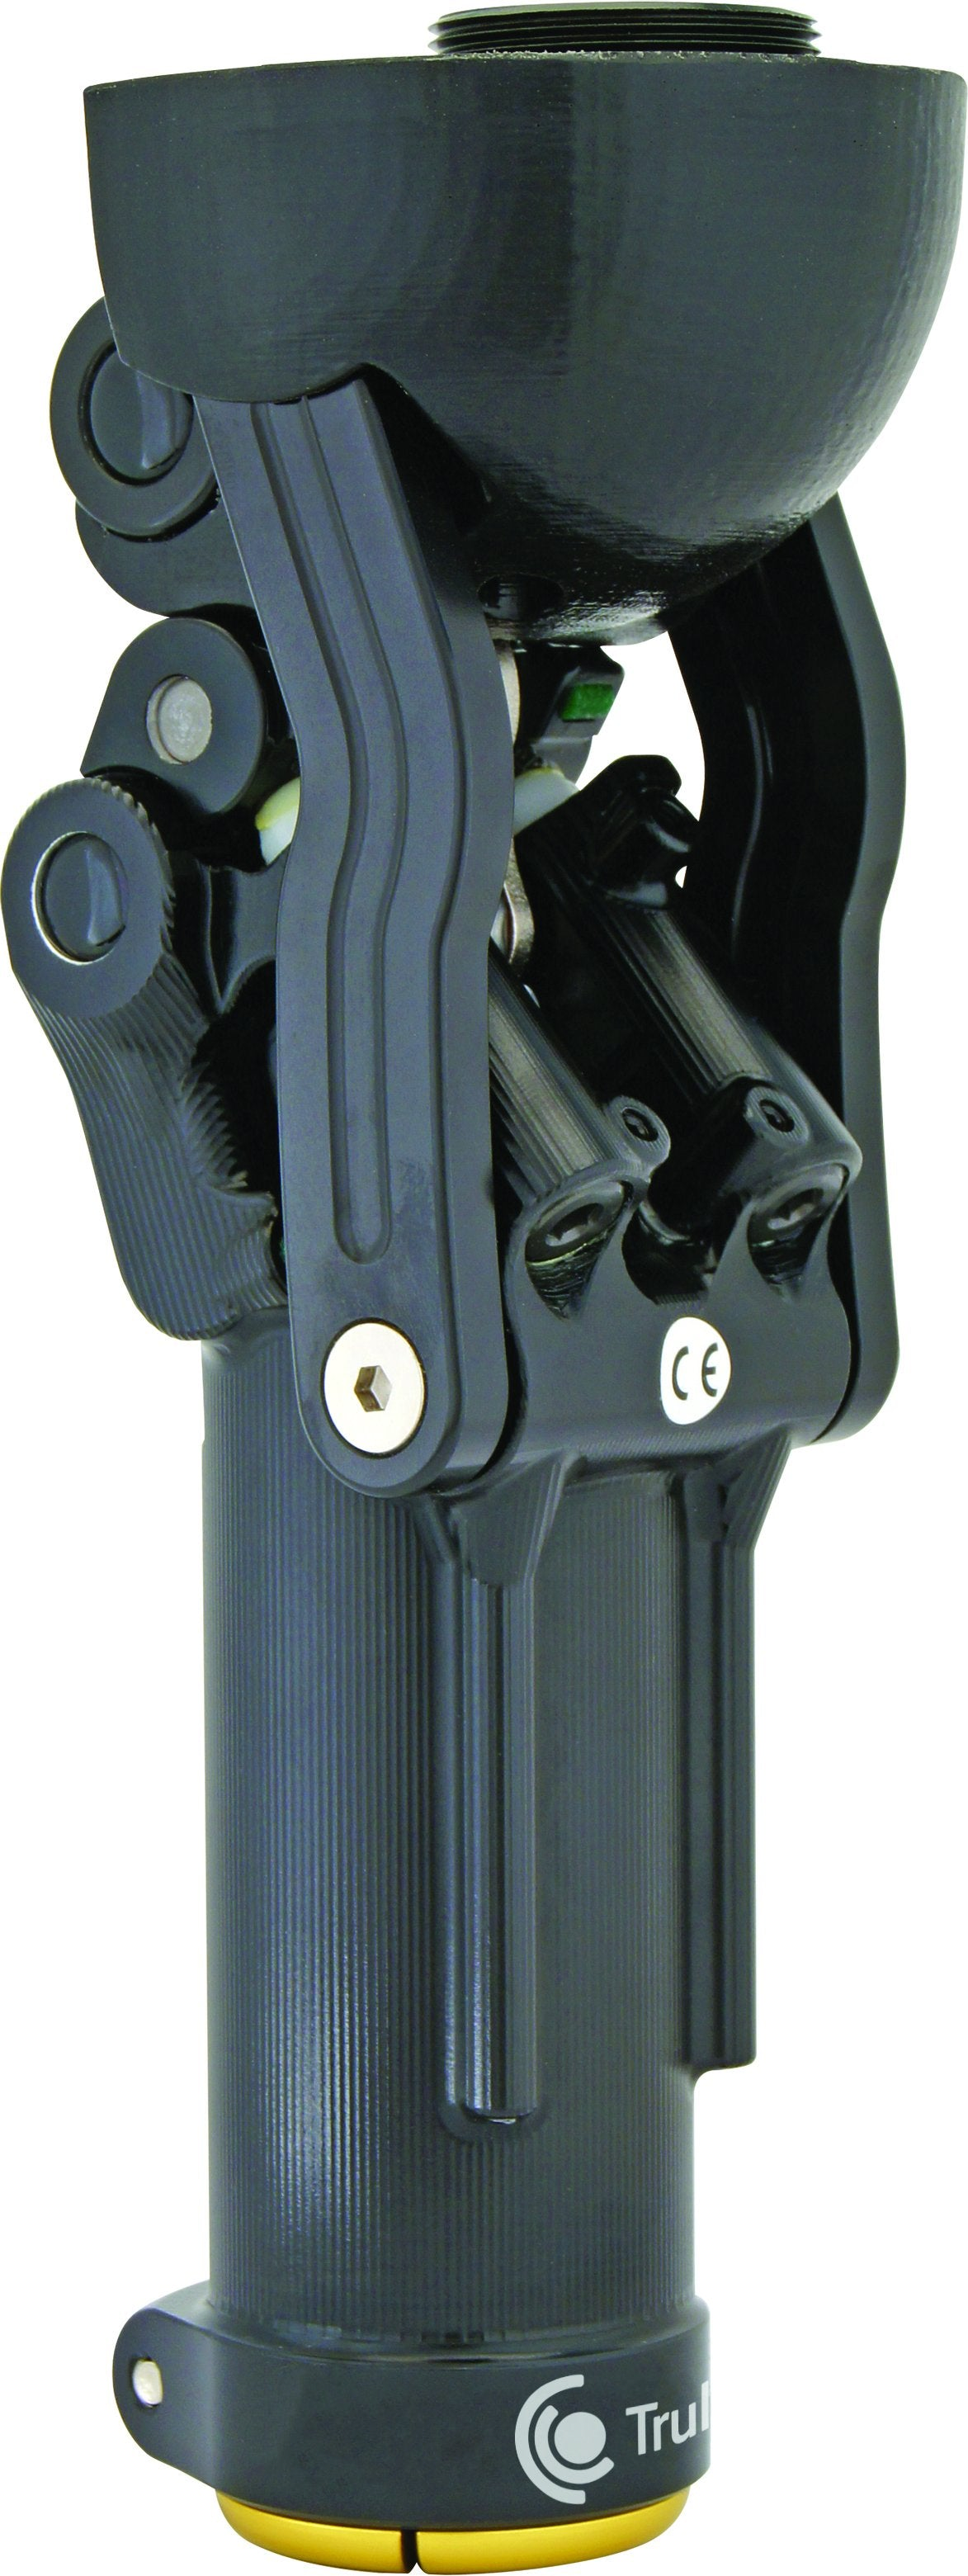 SSK615THR - Select Stance Flexion Knee with Threaded Proximal Adapter